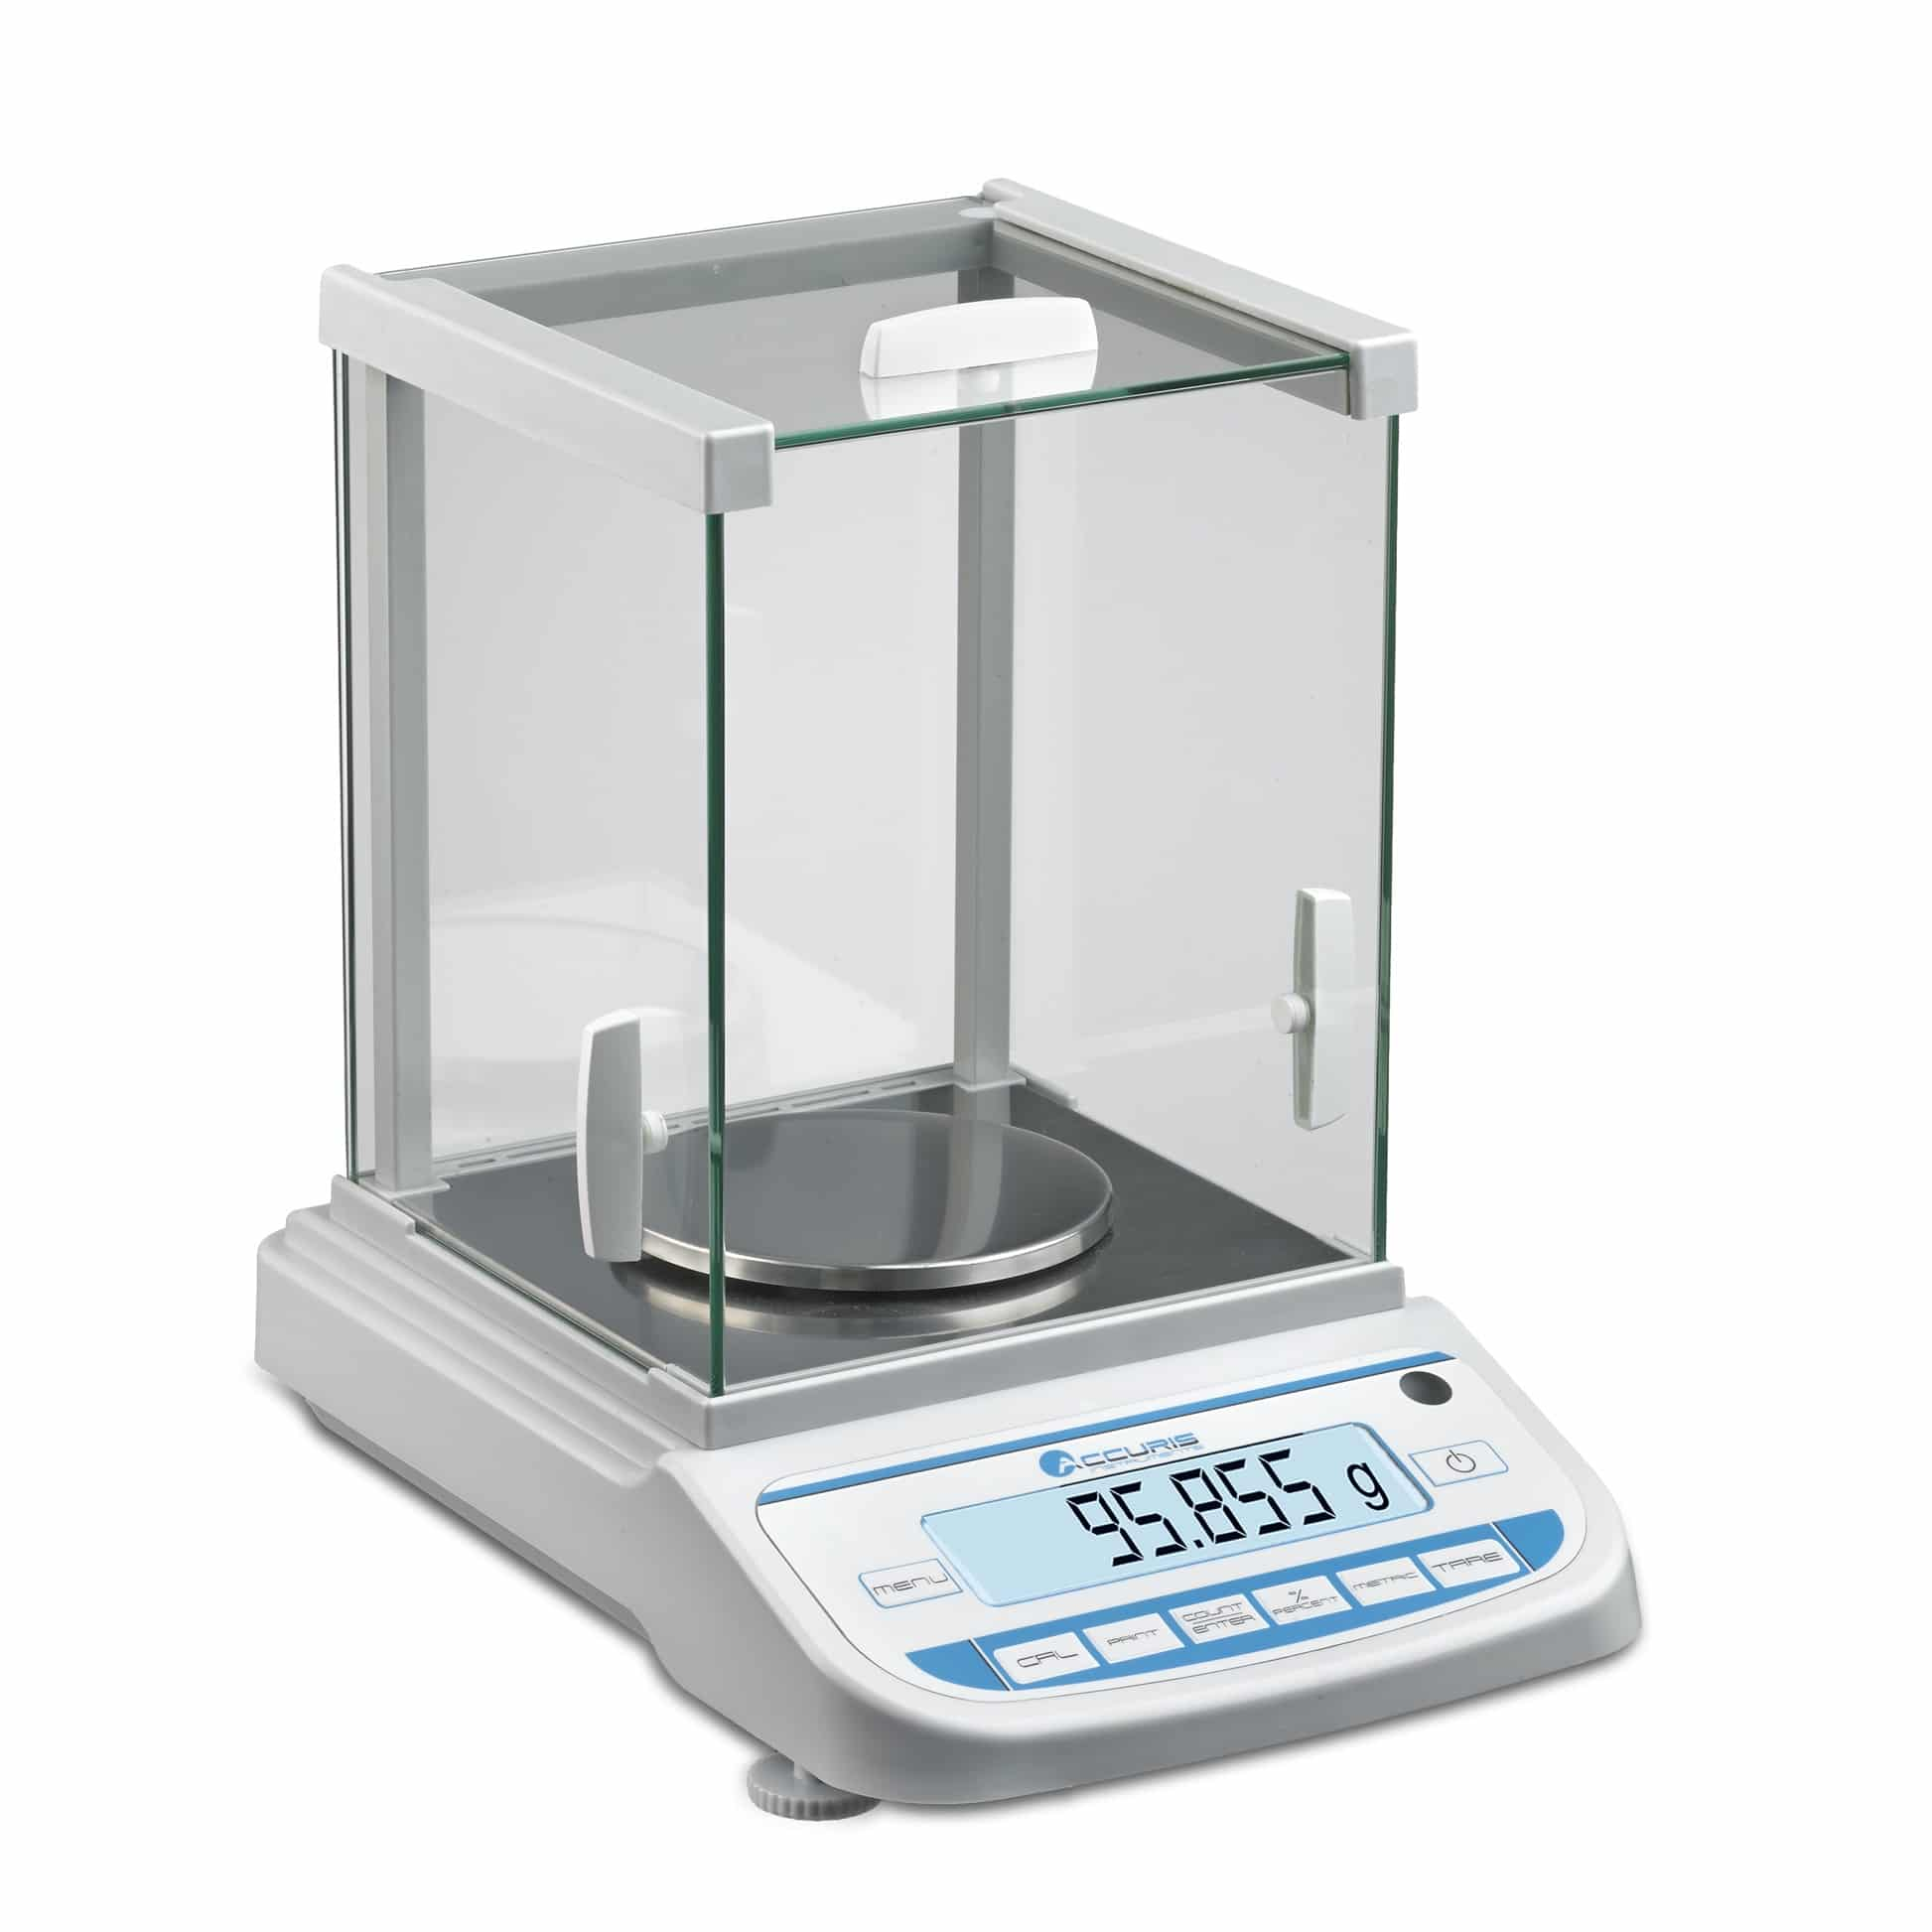 Accuris Precision Balance 120g